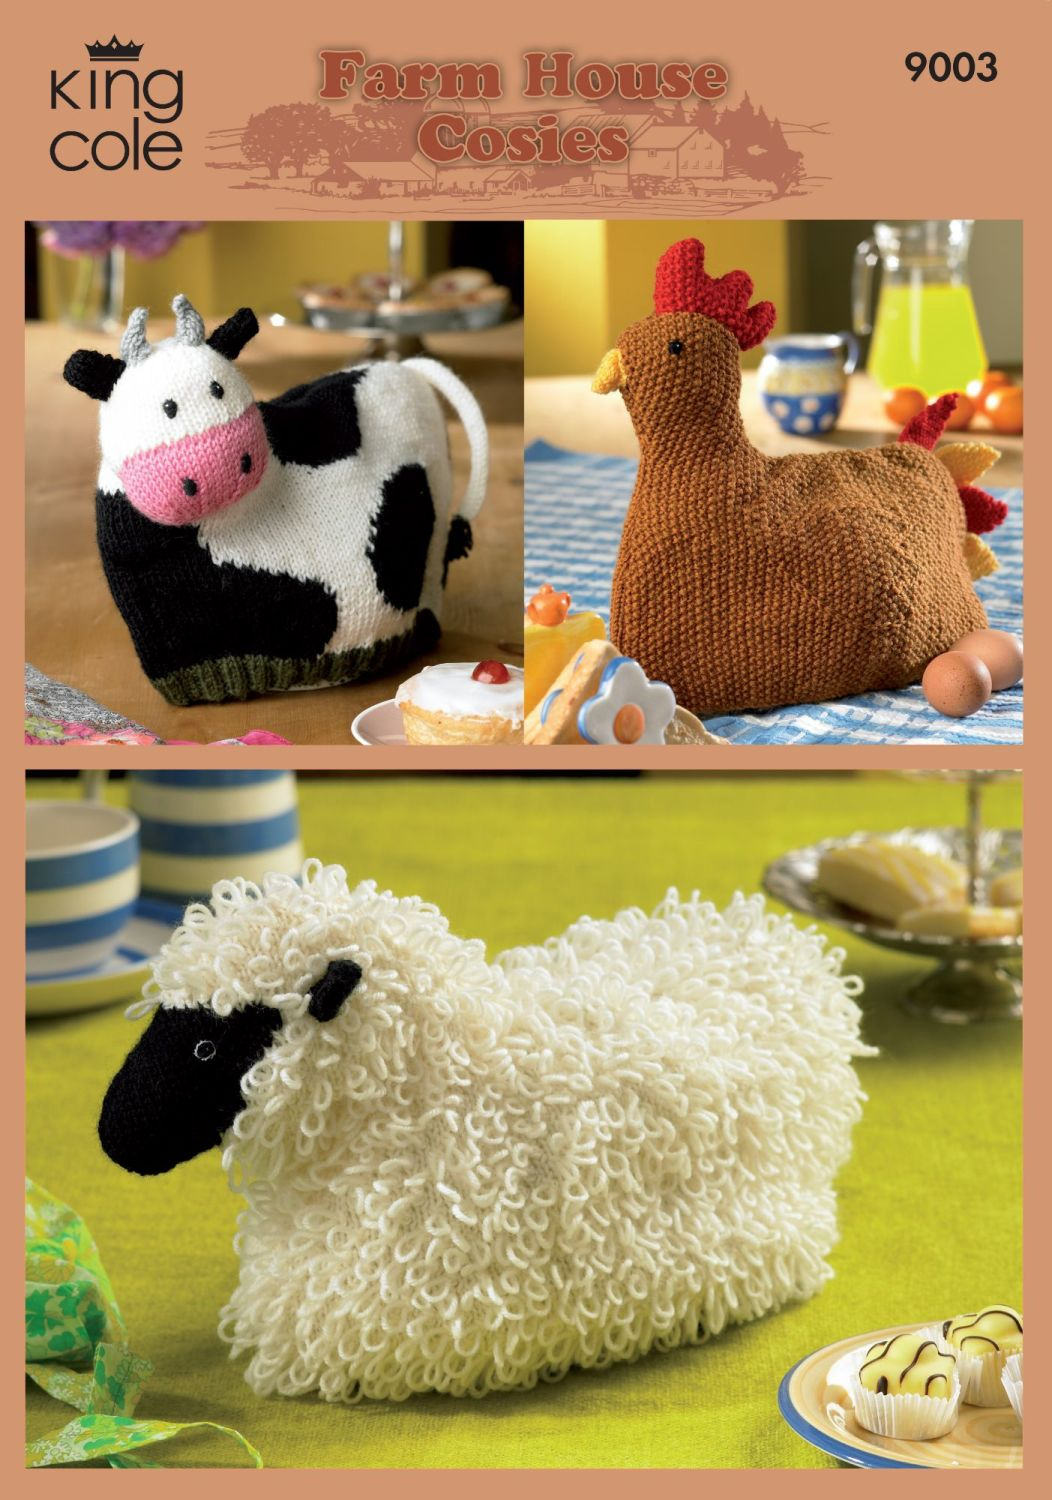 9003 Knitting Pattern - Farm House Cosies (Tea Cosy)